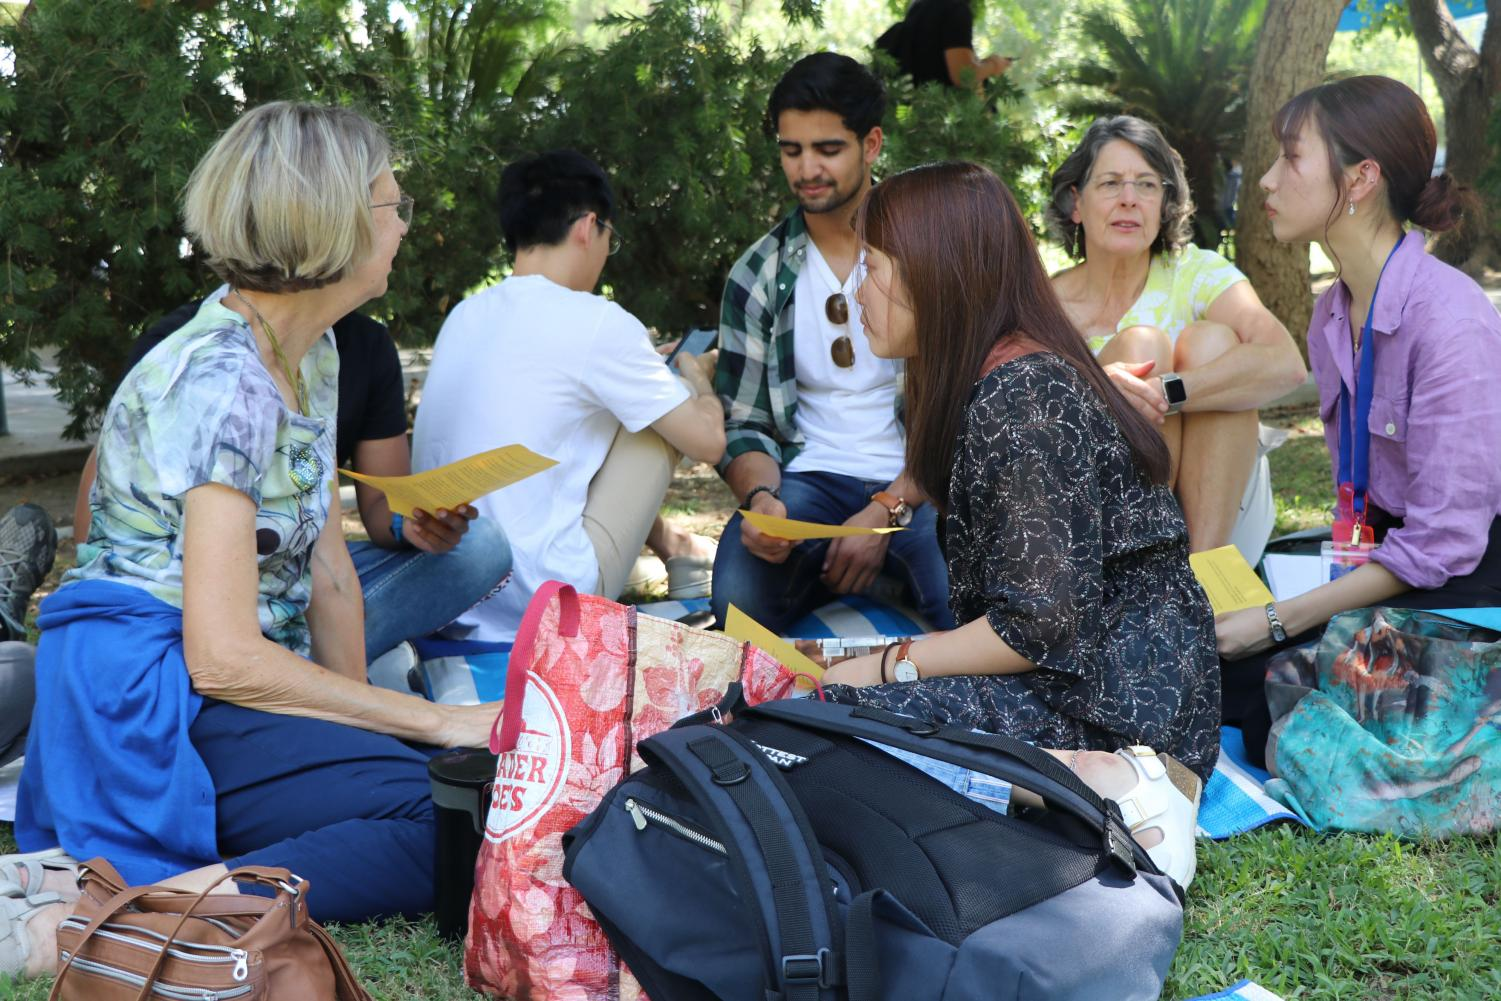 Event coordinators and International Students on campus gather around during talk time for fellowship on Sept. 3, 2019.